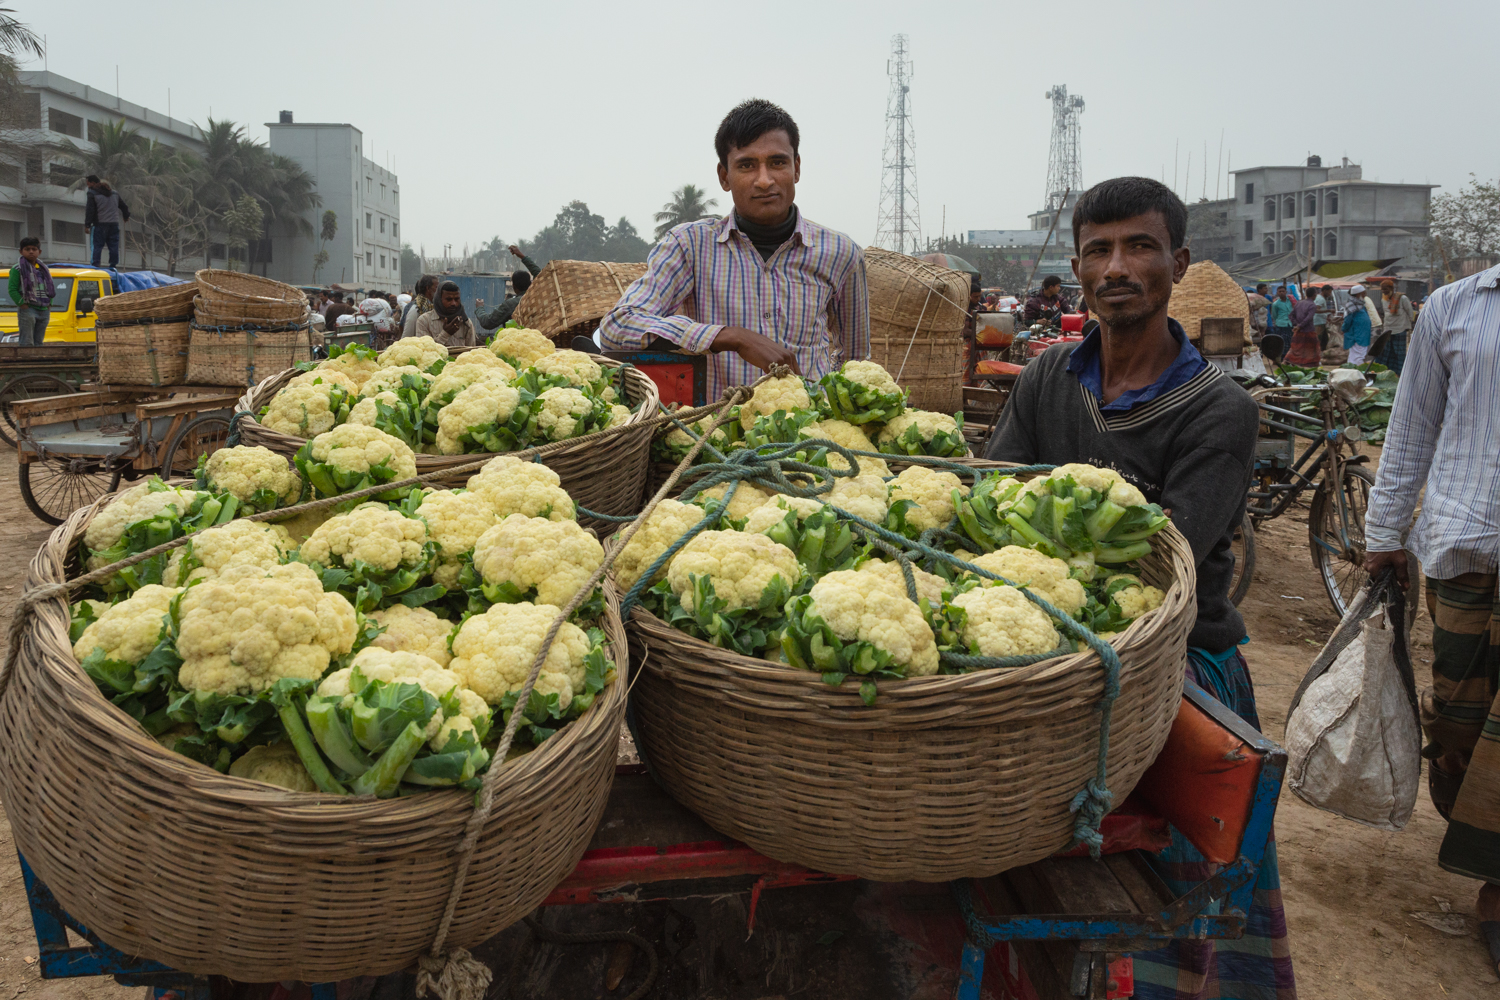 Sellers displaying their vegetables in baskets for sale at Dhaka, Bangladesh Vegetable Markets.